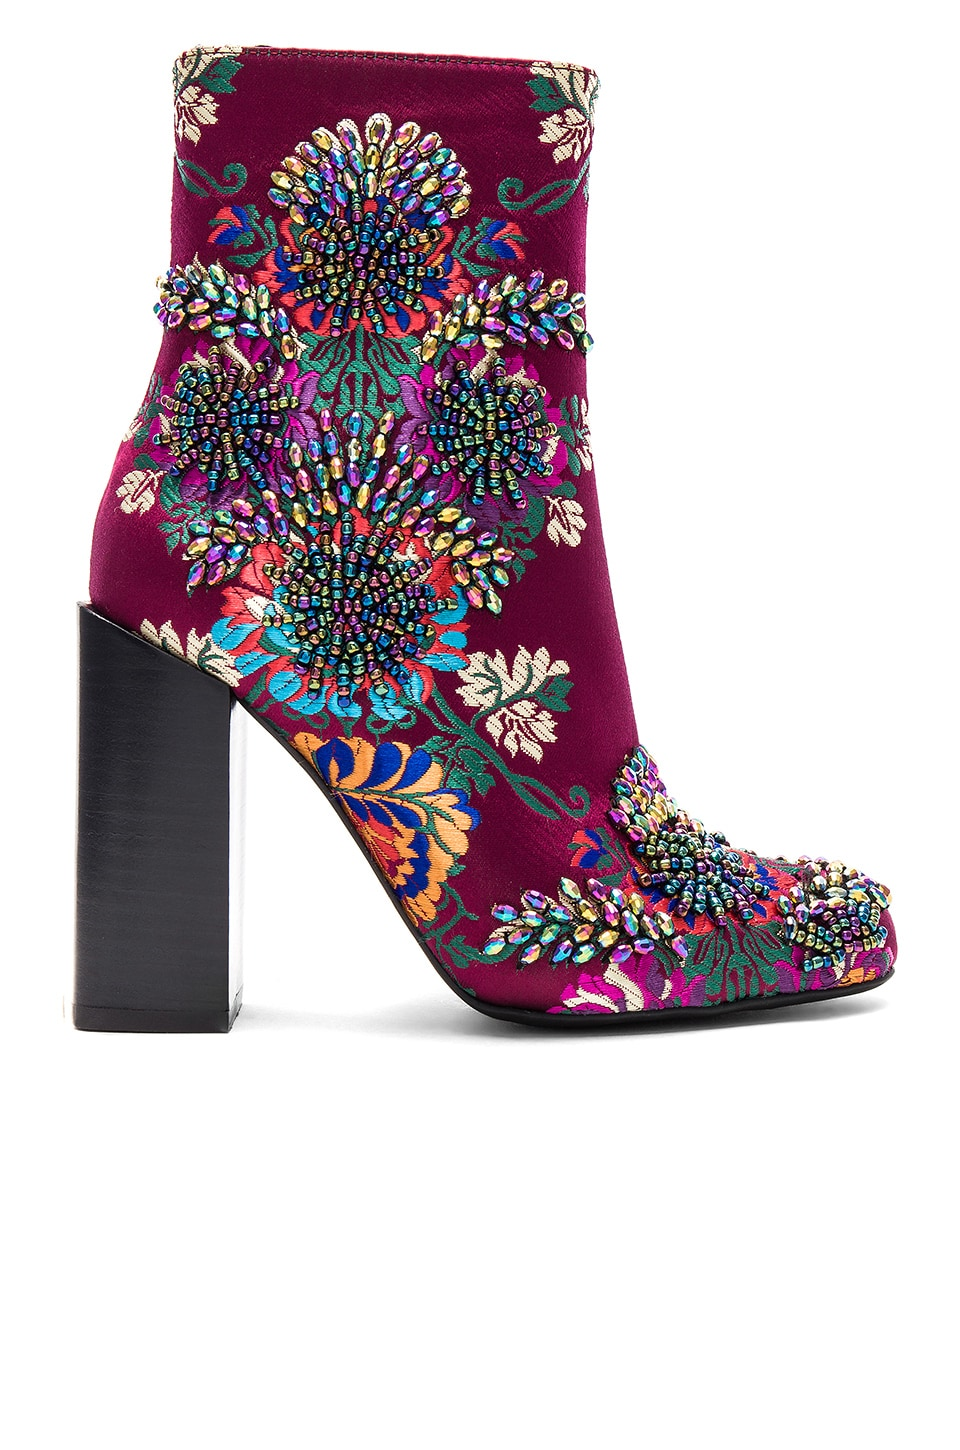 Jeffrey Campbell Beaded Stratford Bootie in Wine Multi Floral Brocade